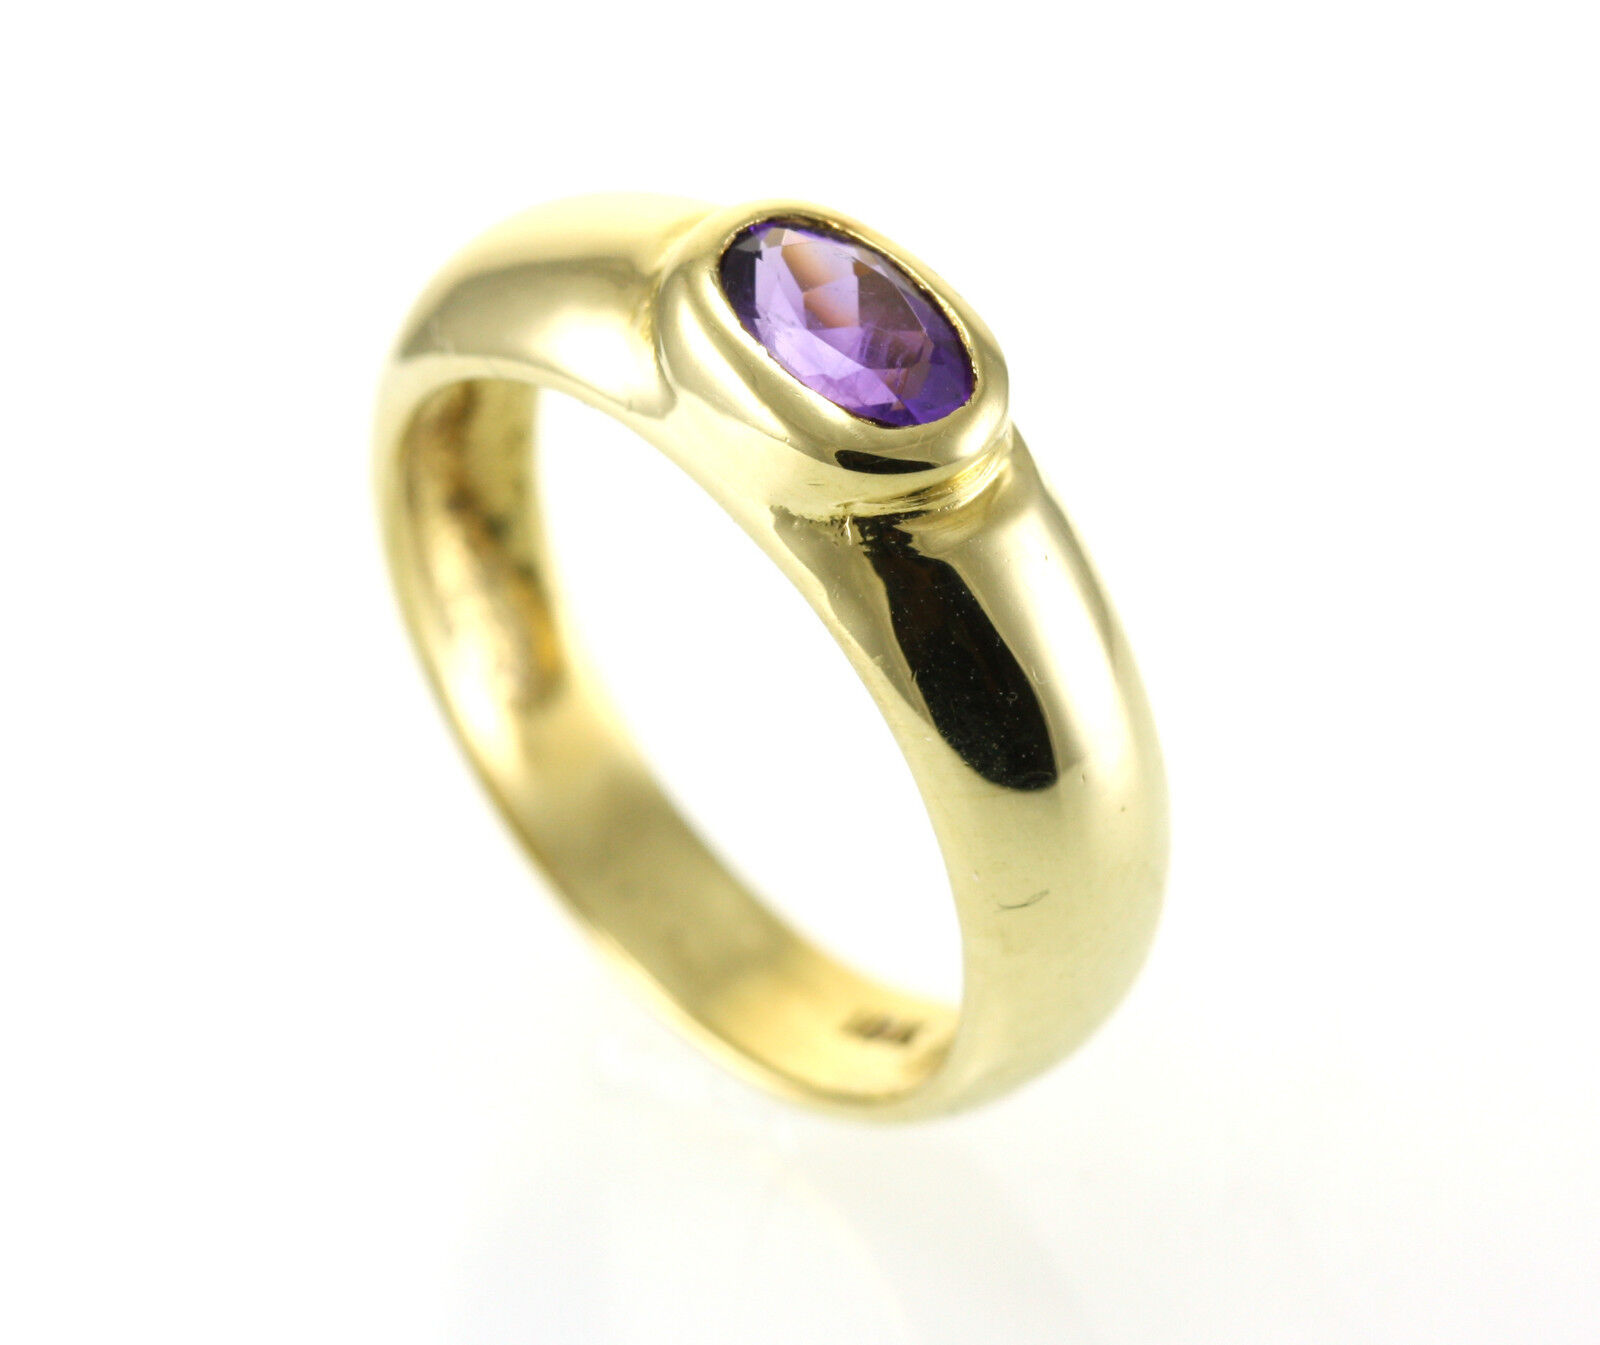 18KT YELLOW gold RING WITH OVAL ZAMBIAN AMETHYST FACETED FINE QUALITY